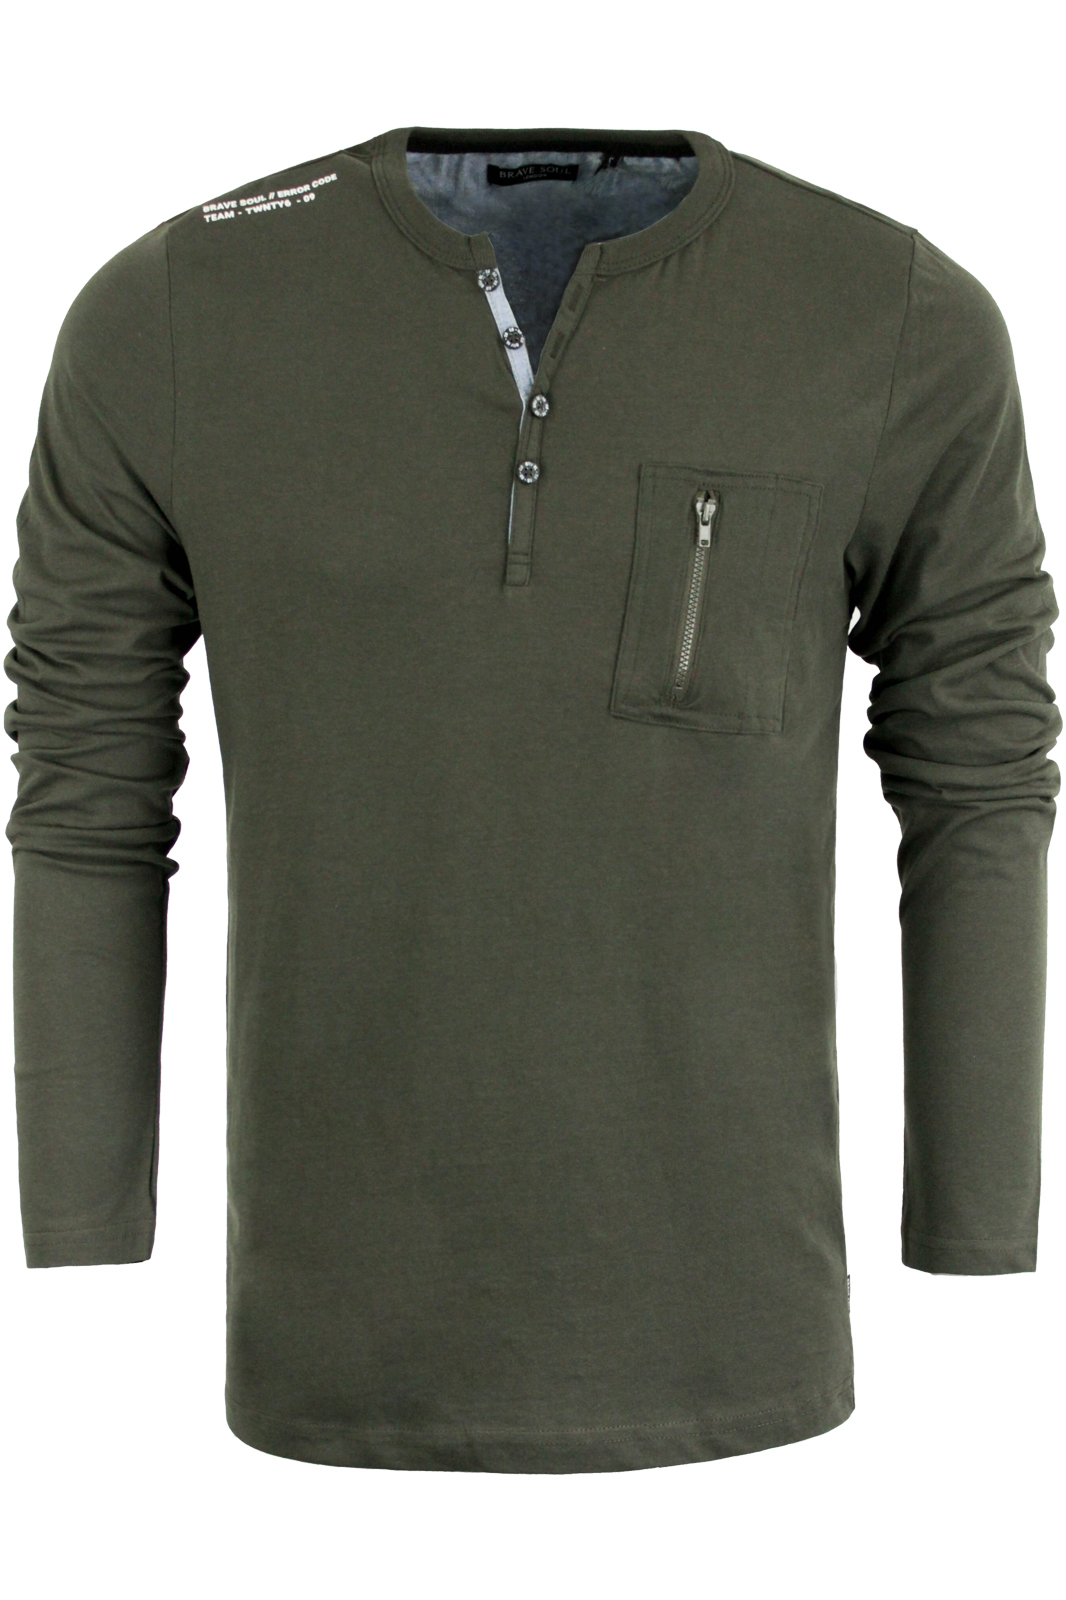 Mens designer henley style collar long sleeve top by brave for Mens collared henley shirt